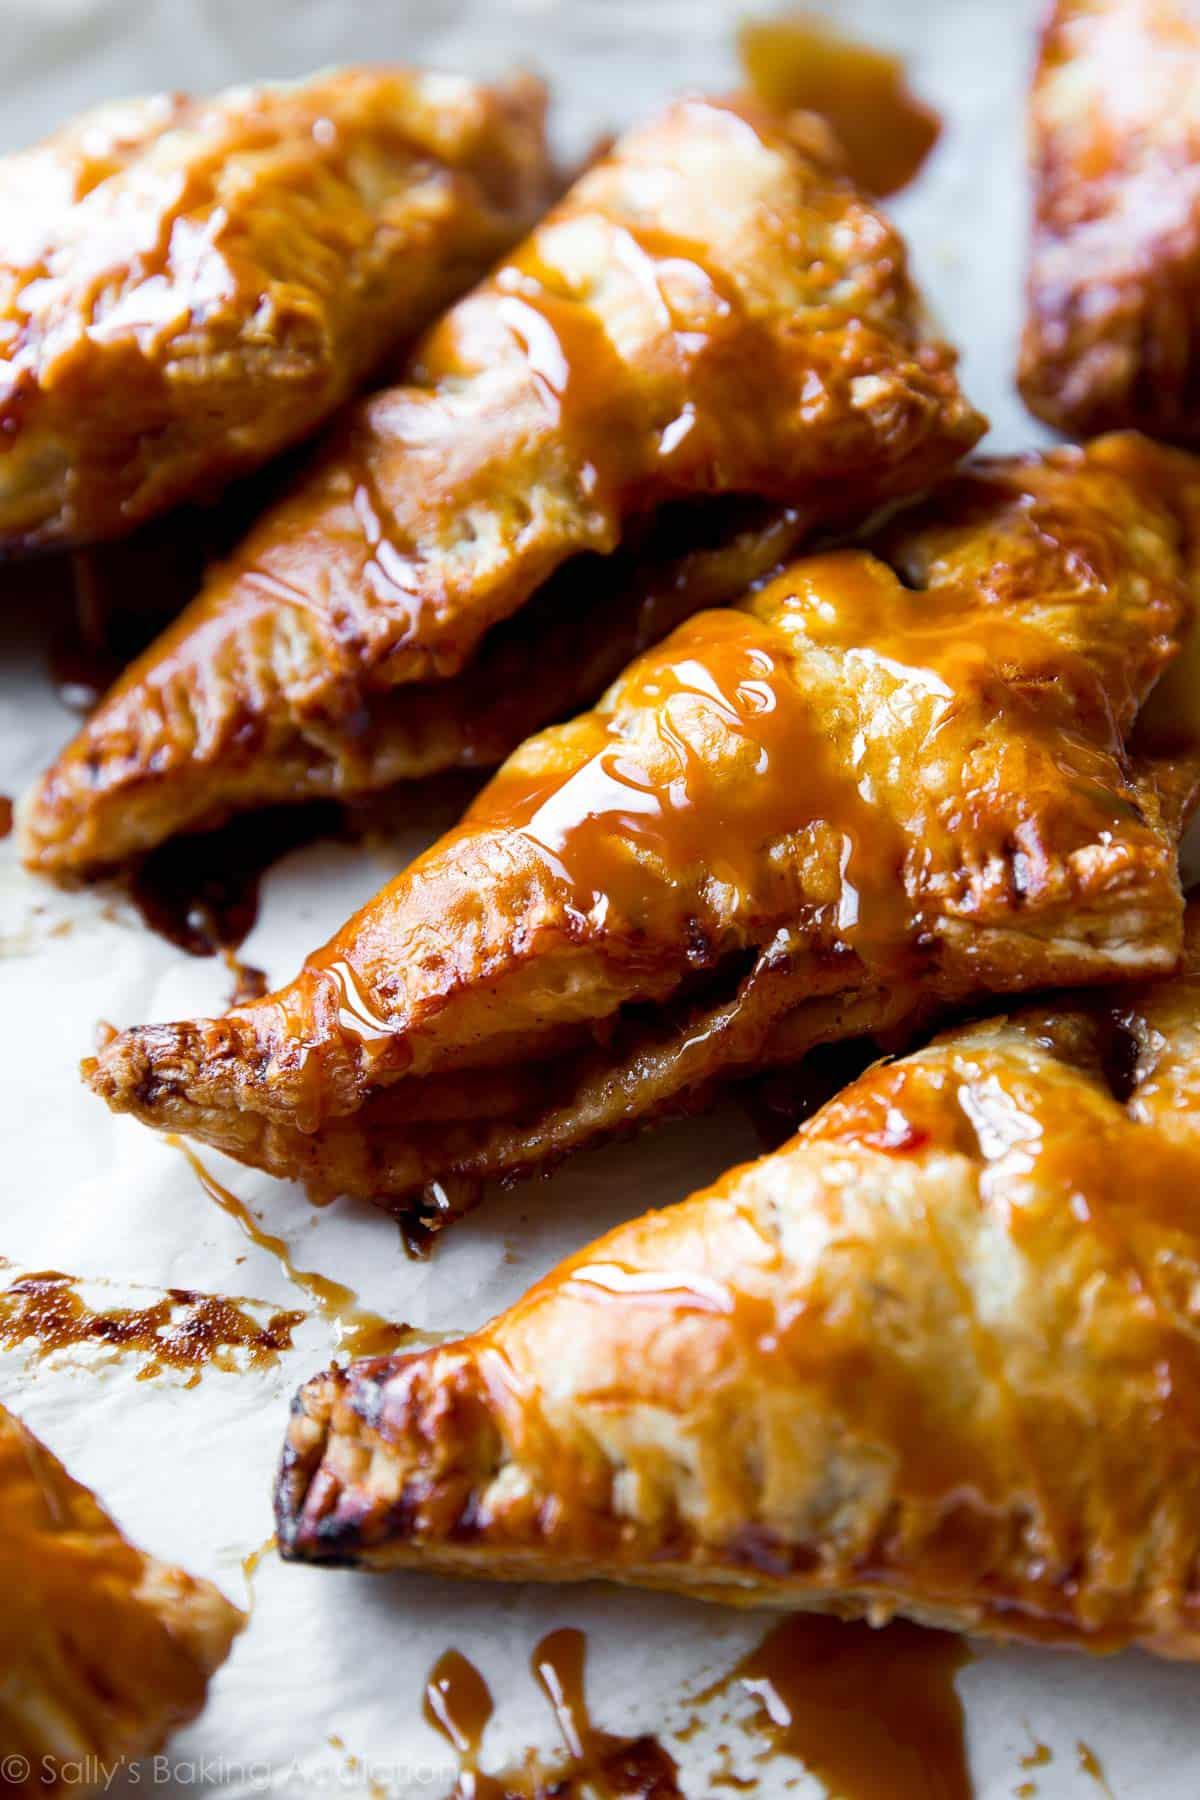 Super easy, flaky hot apple turnovers with delicious salted caramel on top! Recipe on sallysbakingaddiction.com